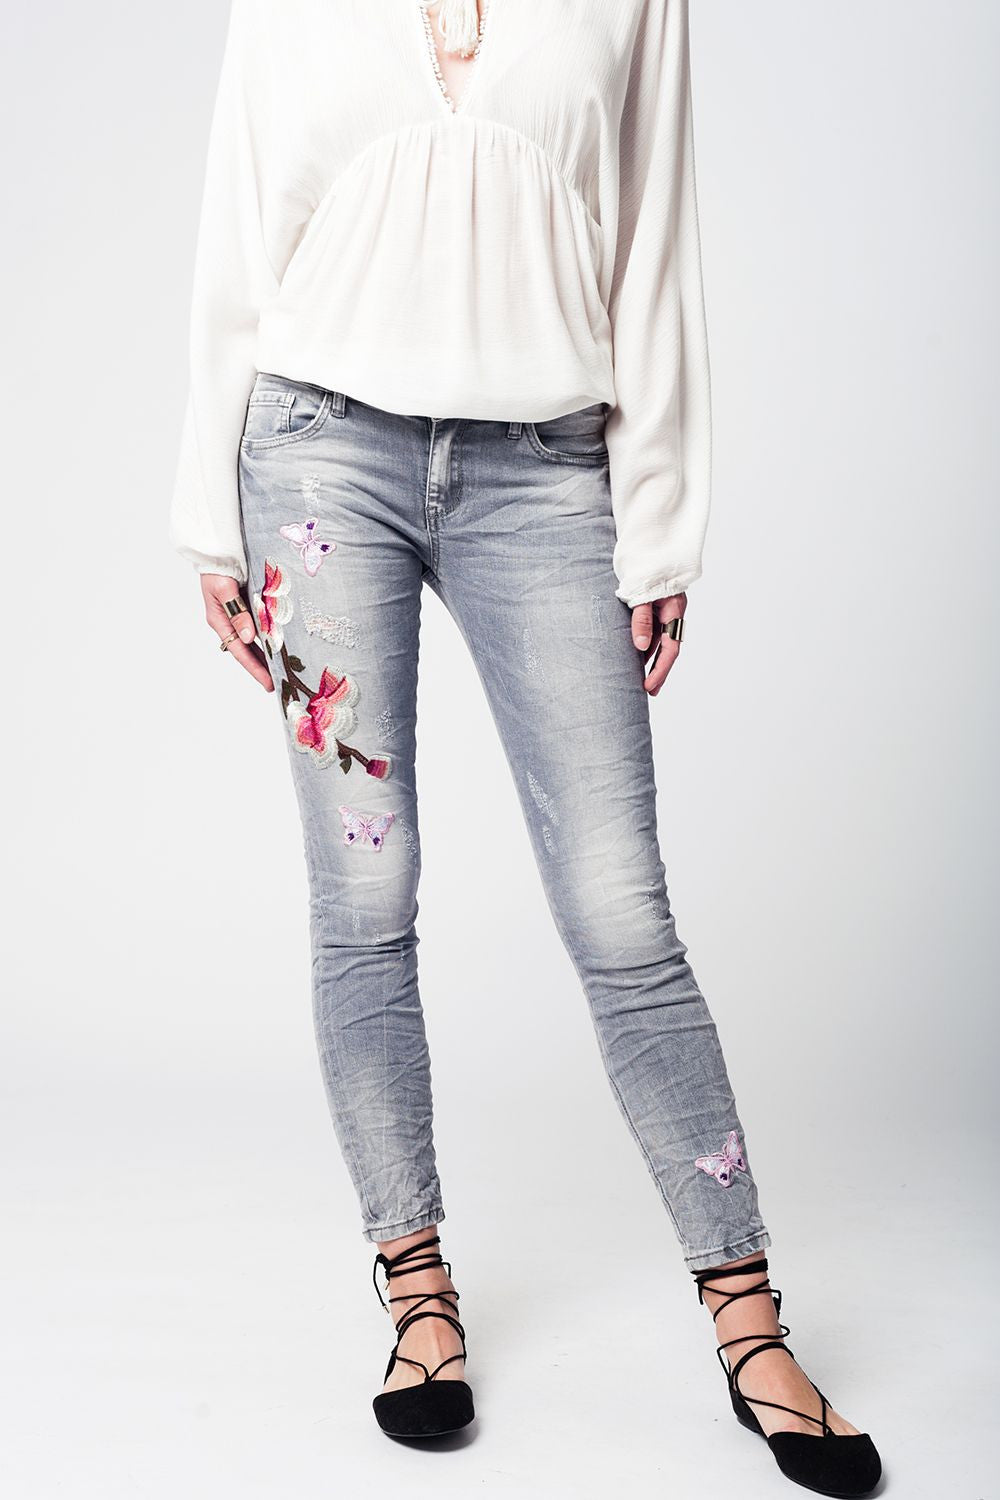 GRAY DENIM JEANS WITH FLOWER EMBROIDERY